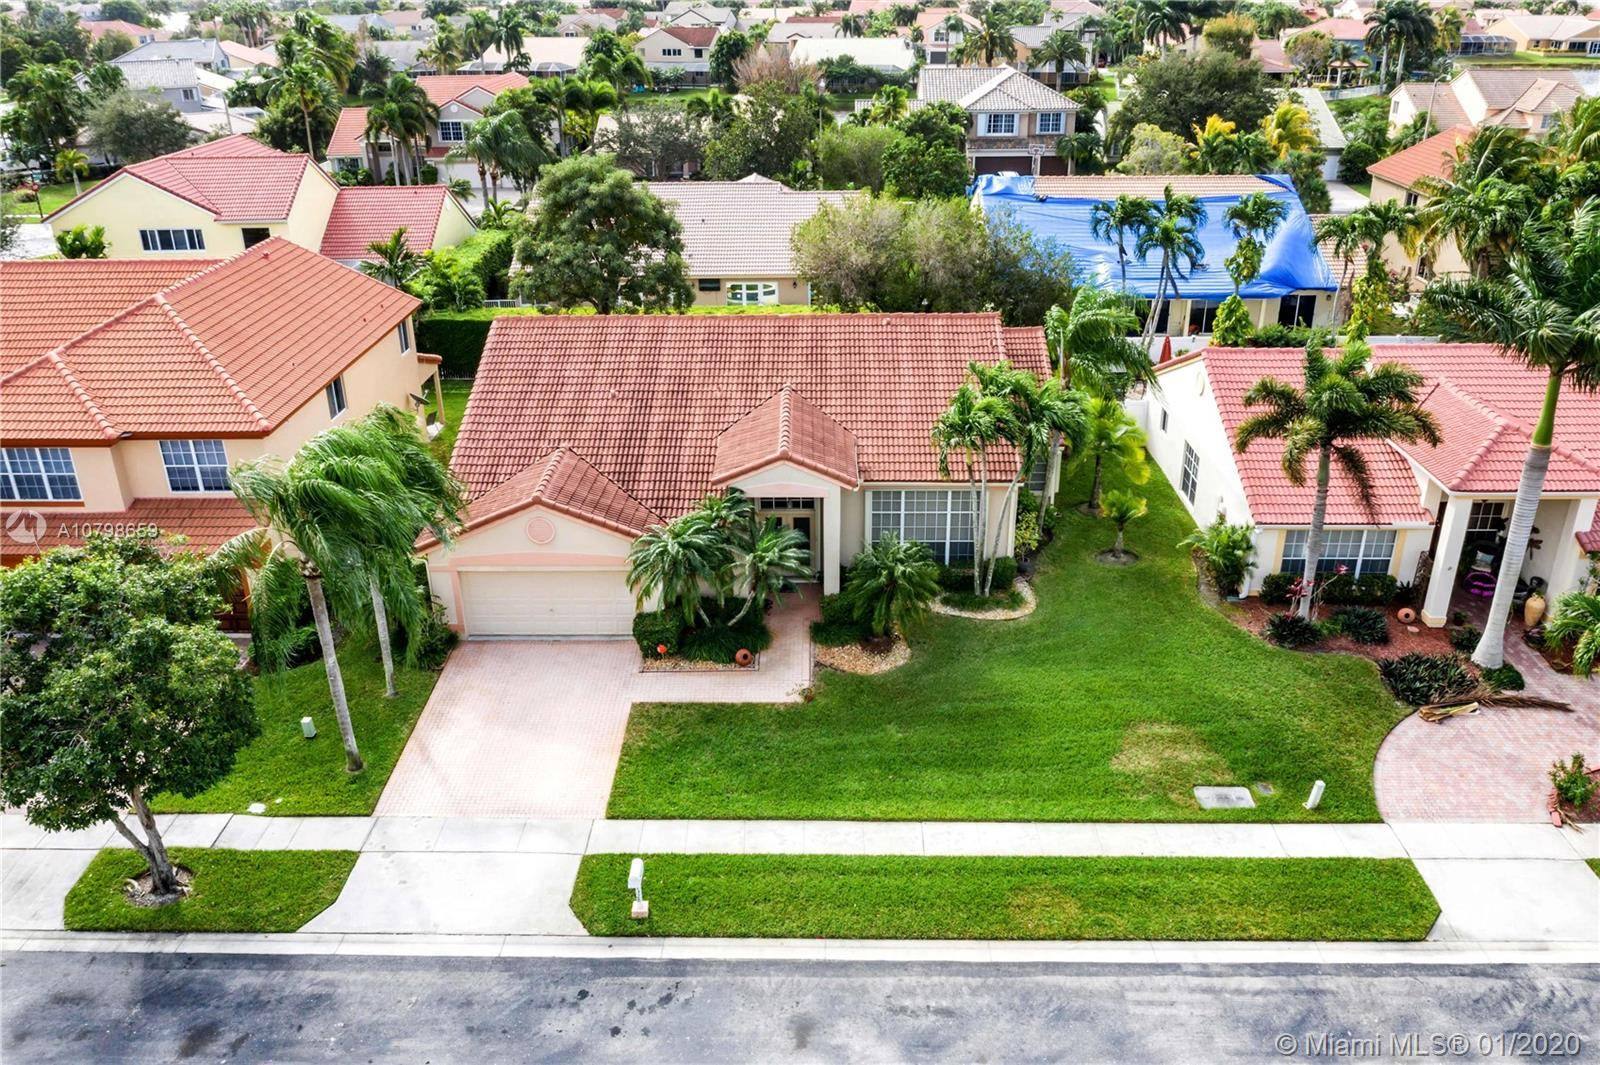 Spectacular one-story home in the prestigious gated community of Chapel Trail Estates. Very well-maintained home, 4bd | 2.5 ba | 2655 SFT | 2-car garage. This home features double door entry, High volume ceilings, kitchen center island overlooks spacious family room, tiled flooring in living areas, wood flooring in all bedrooms, oversized master bedroom w/ huge walk-in closet, separate laundry room w/tub, accordion shutters, extended driveway which accommodates 4 vehicles, security alarm, low HOA dues, gated community, near Chapel Trail Park Nature Preserve & Pembroke Pines Parks the gated subdivision is located directly across Taft St. from Chapel Trail Elementary, A-rated School district, near shopping centers, churches, and restaurants, Minutes from MIA & FTL.